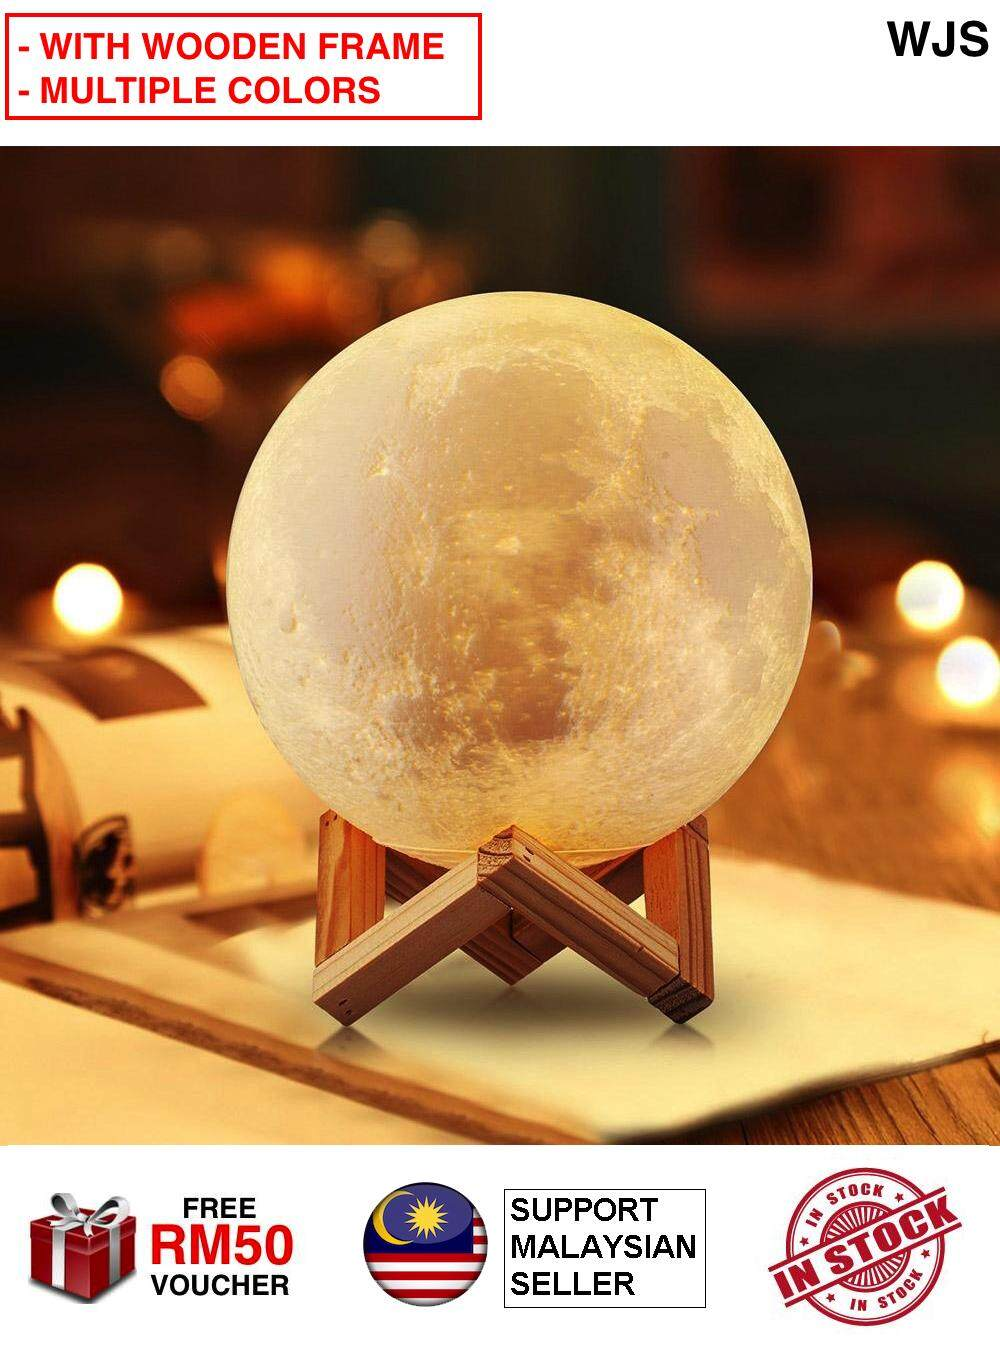 (WITH WOODEN STAND) WJS 15cm Full Moon LED Night Light LED 3D Printing Moon Lamp Wooden Frame Touch Sense Touch Control Brightness Bright LED Warm White Cool White Color [FREE RM 50 VOUCHER]